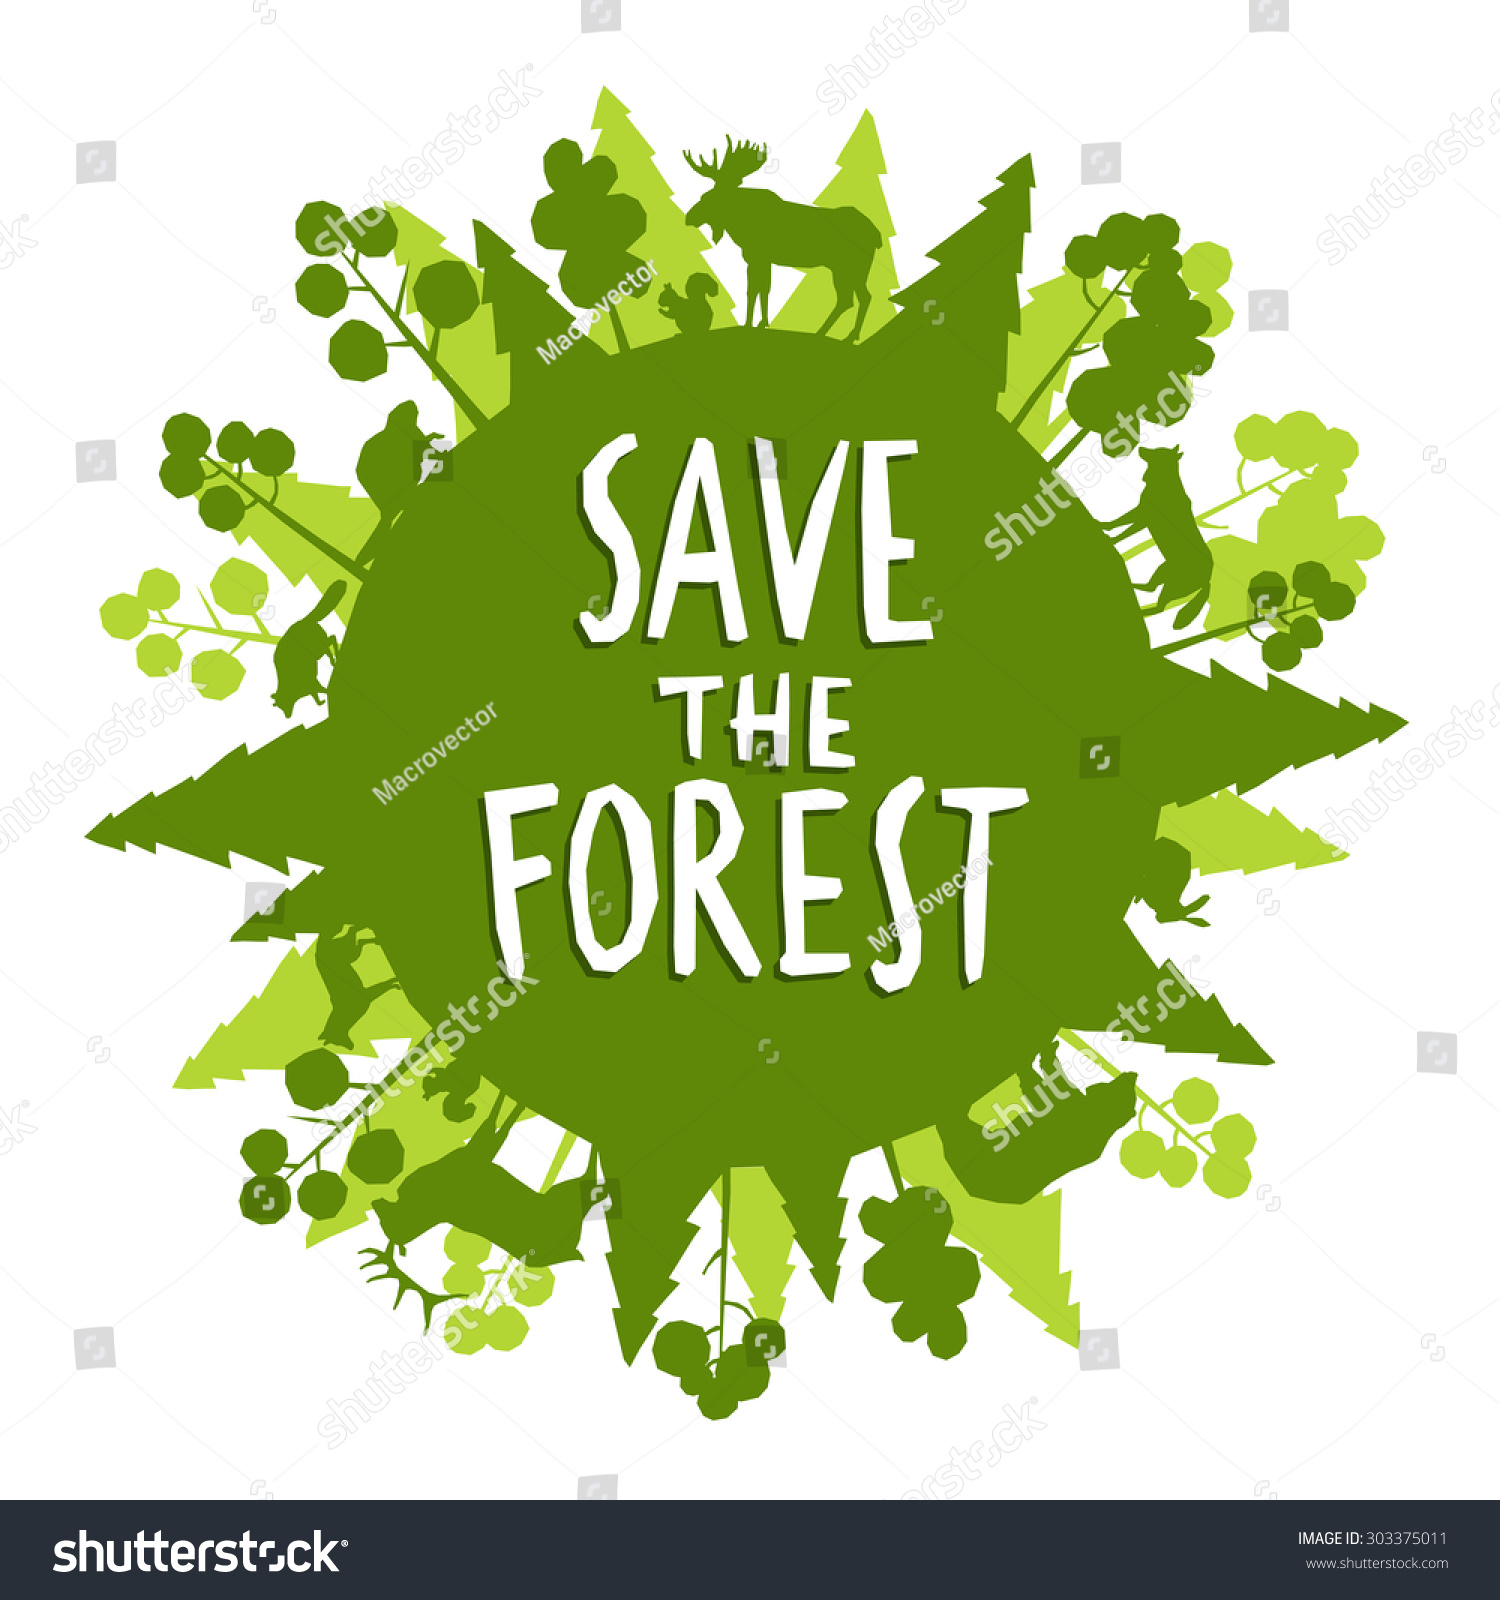 save forest and wildlife essay